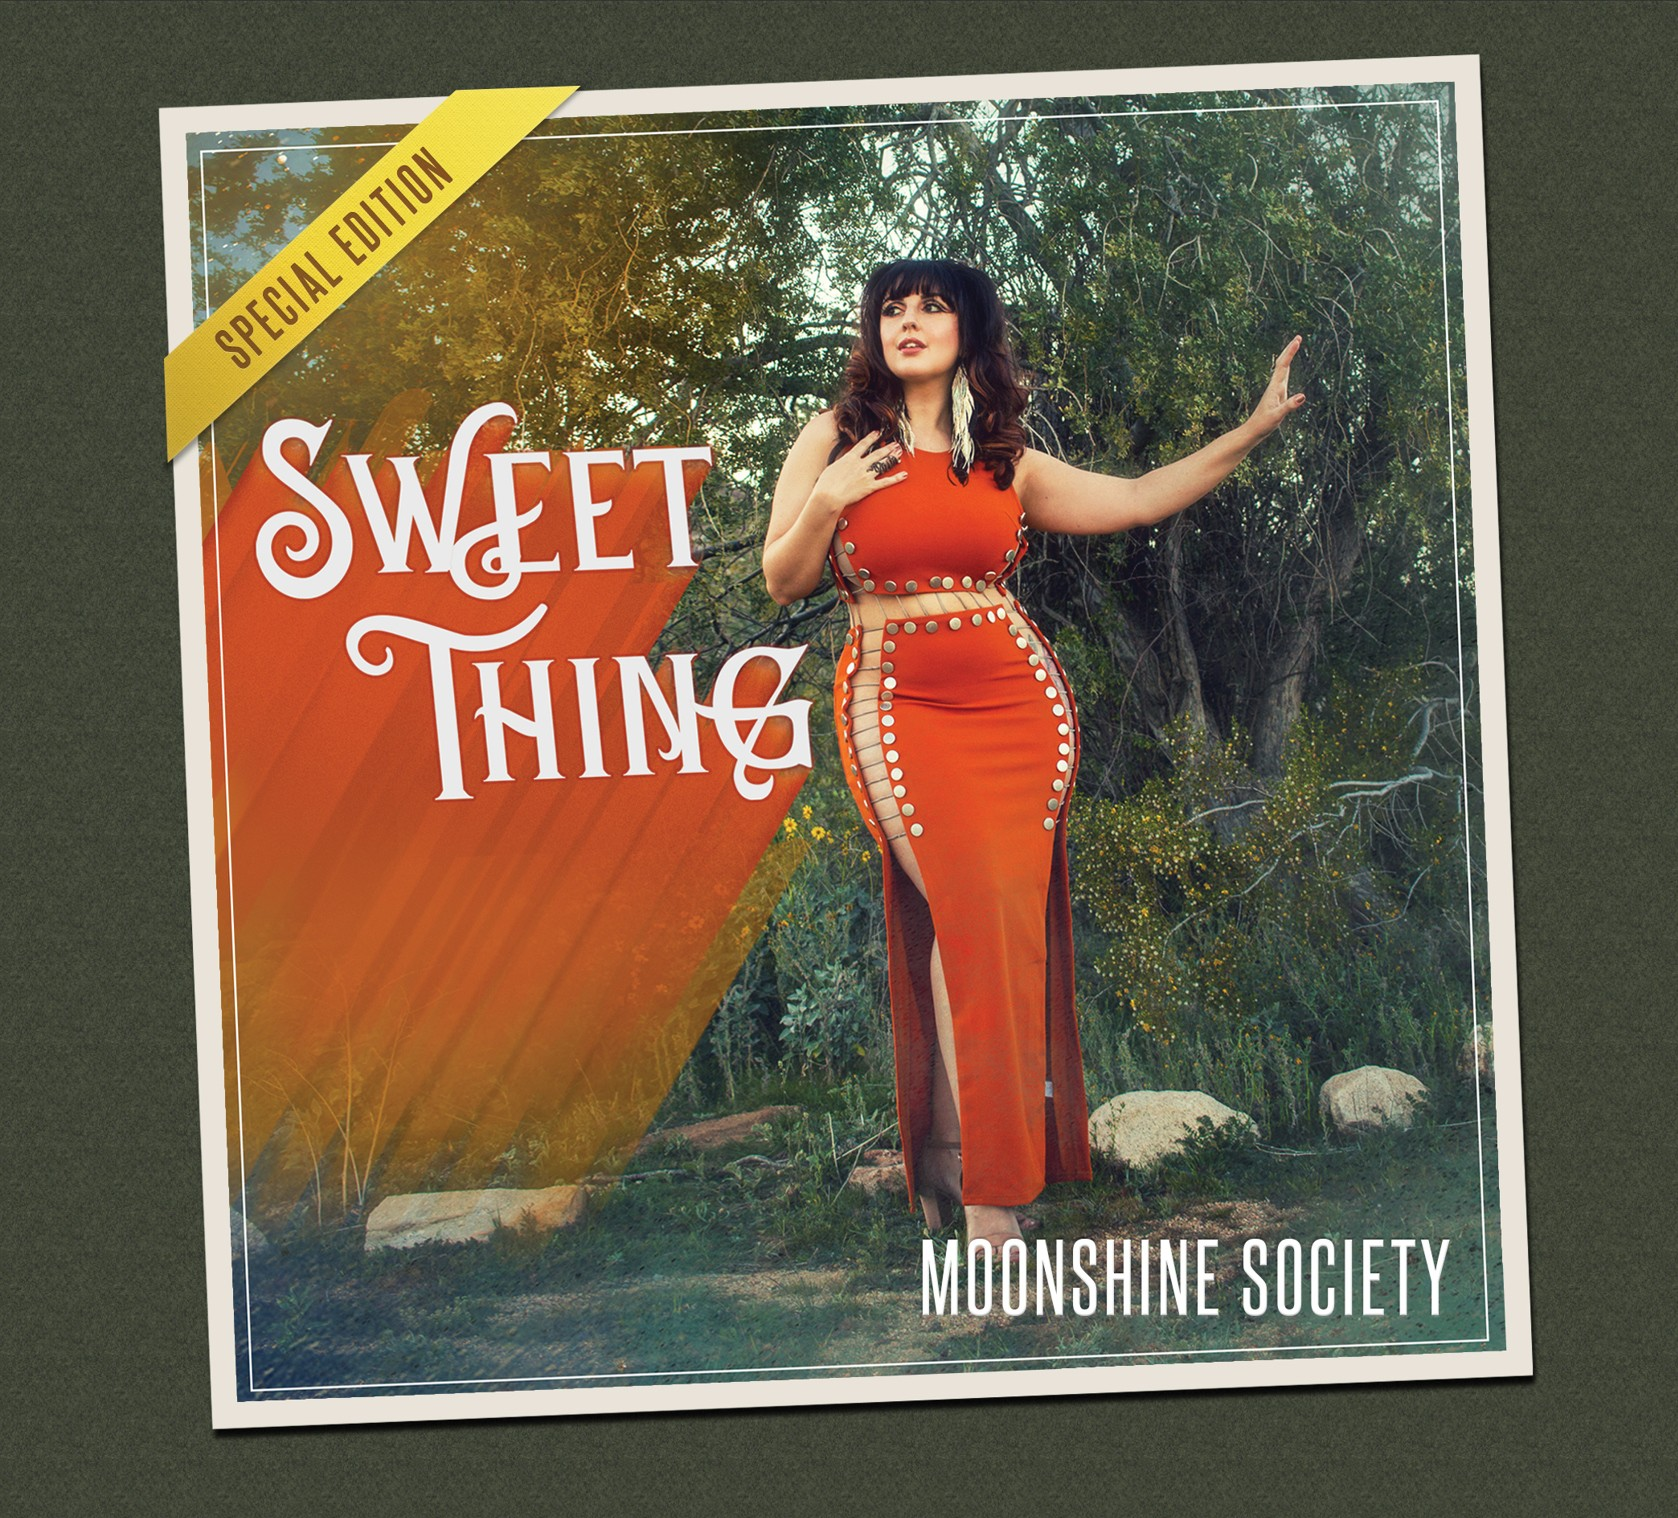 Moonshine Society - Sweet Thing (Special Edition 2021)